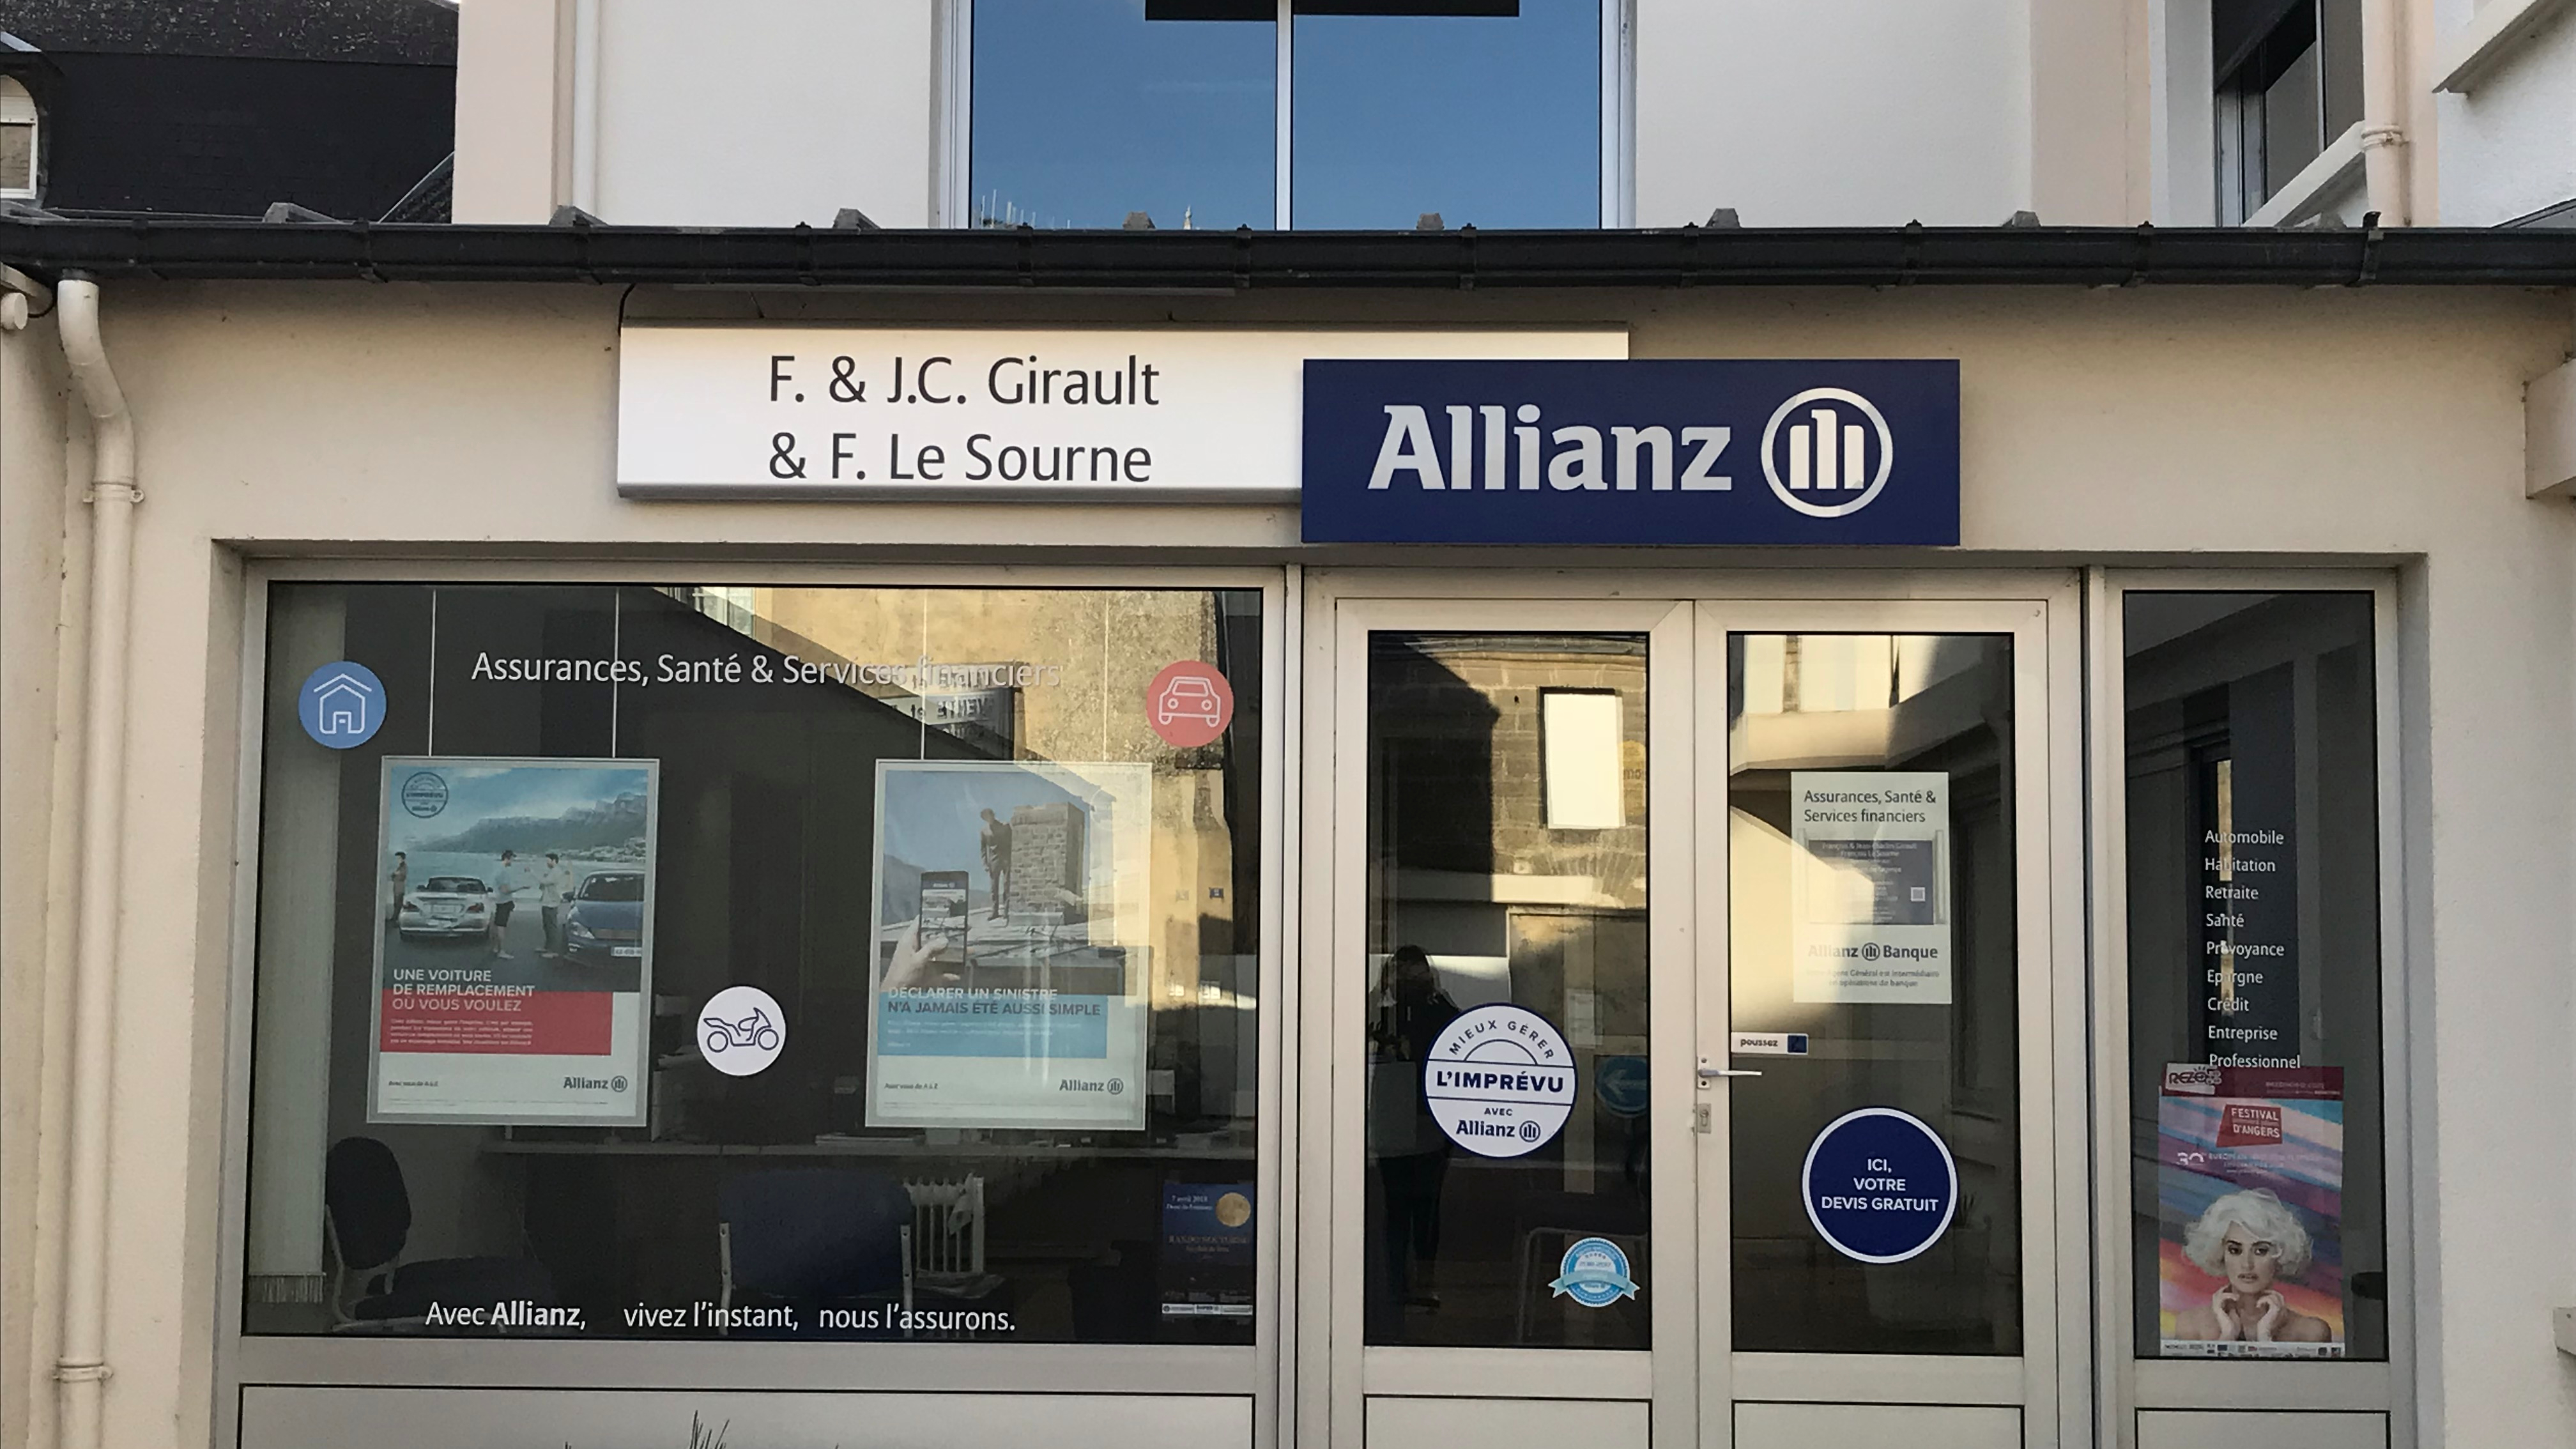 Allianz Doue la fontaine - GIRAULT & GIRAULT & LE SOURNE